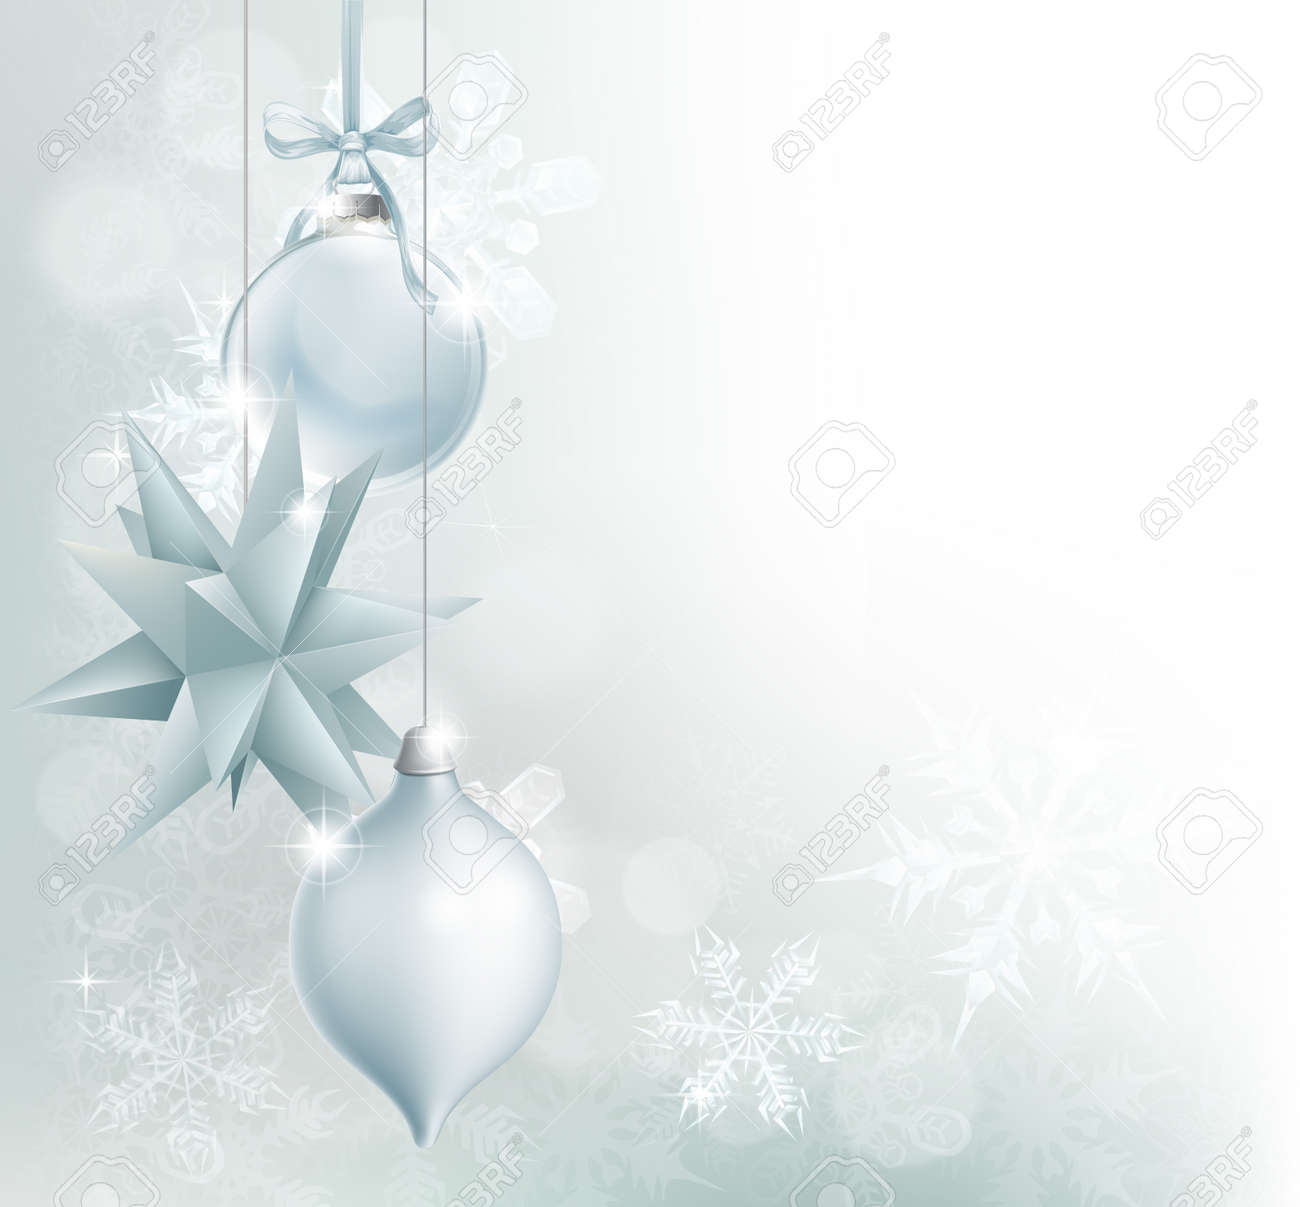 0fba7c789b48a A blue and silver snowflake and Christmas bauble decoration background with  hanging ornaments